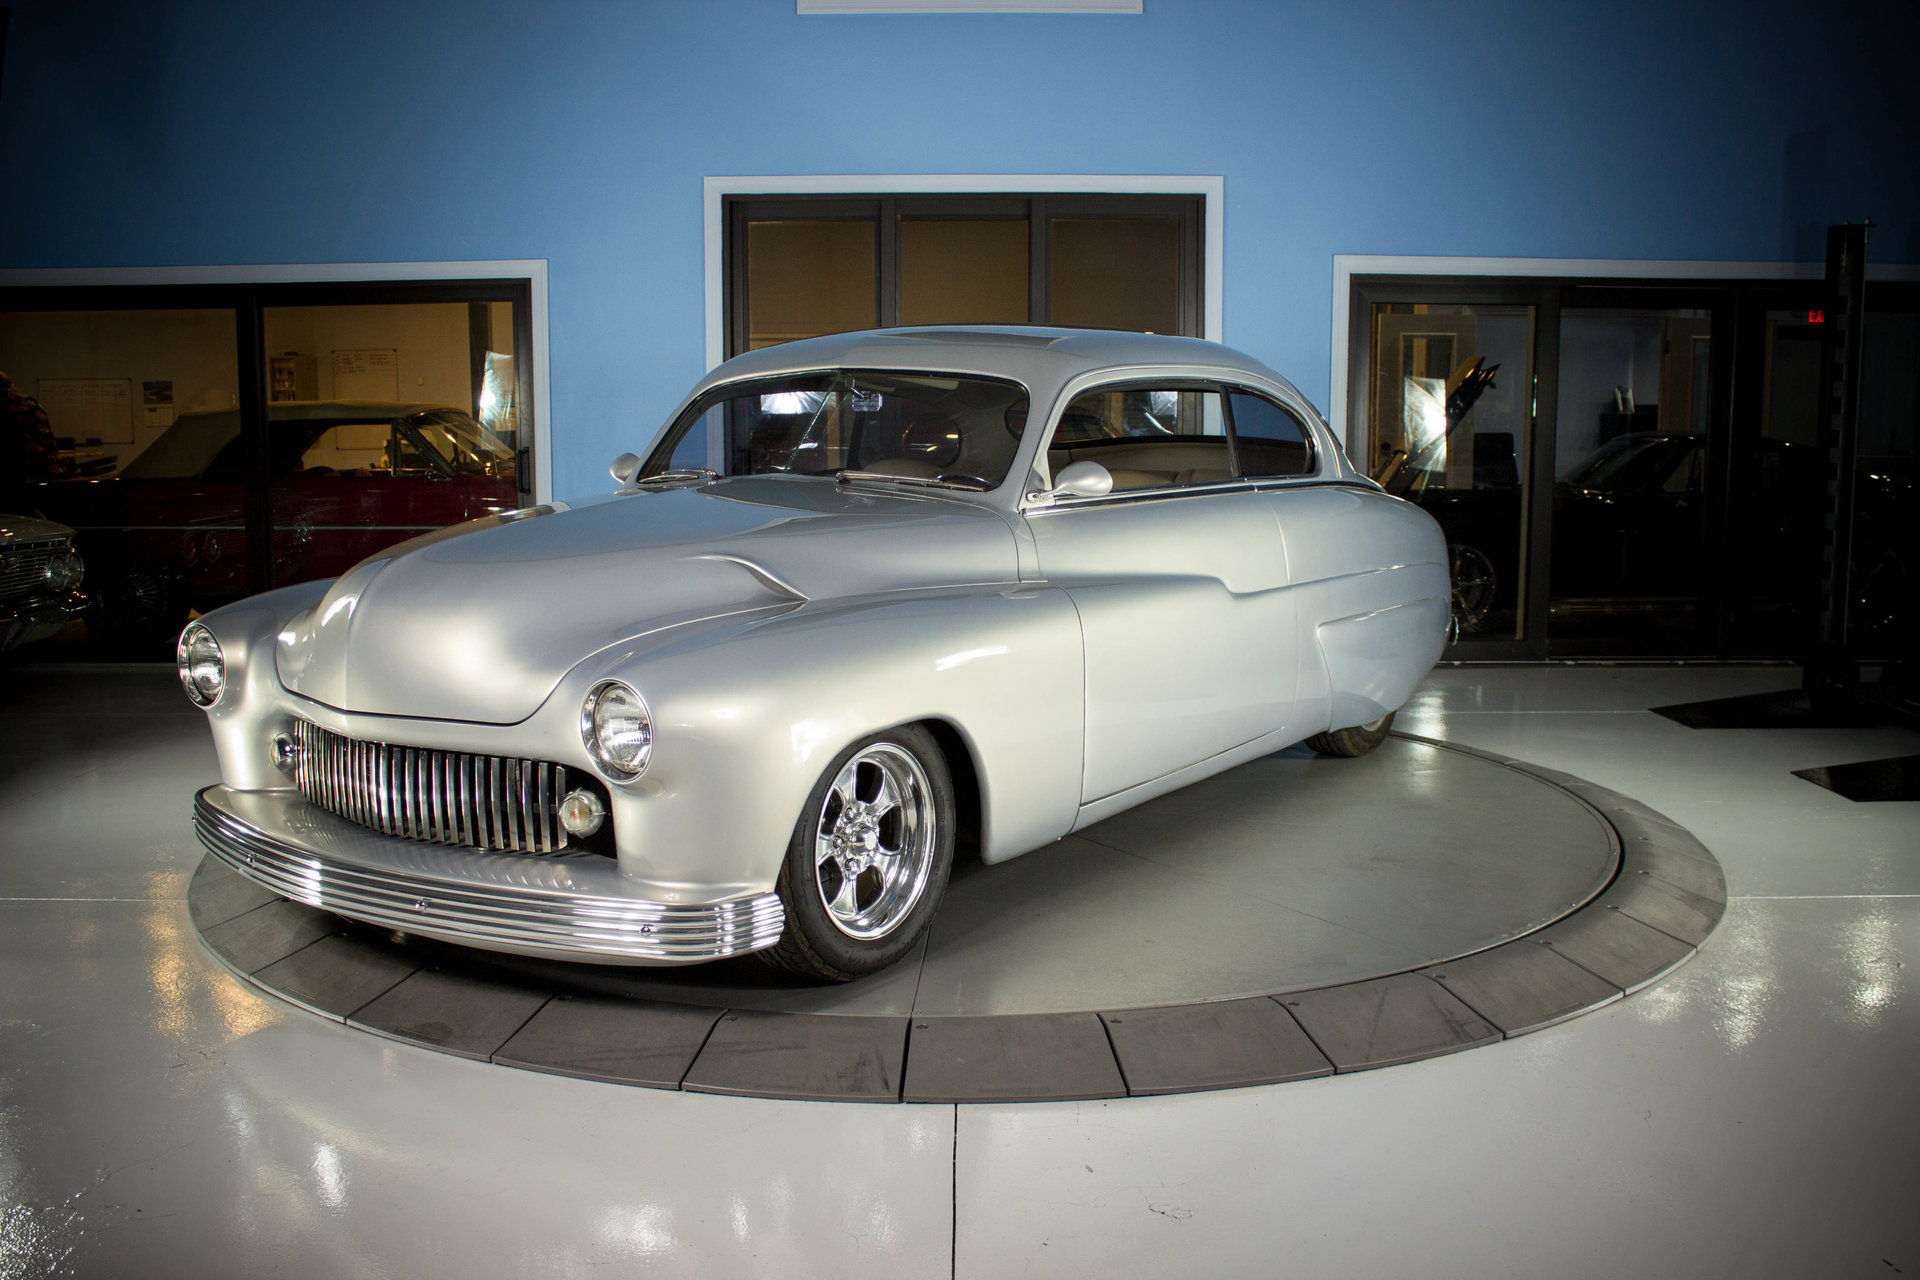 1950 mercury cp classic cars used cars for sale in tampa fl. Black Bedroom Furniture Sets. Home Design Ideas